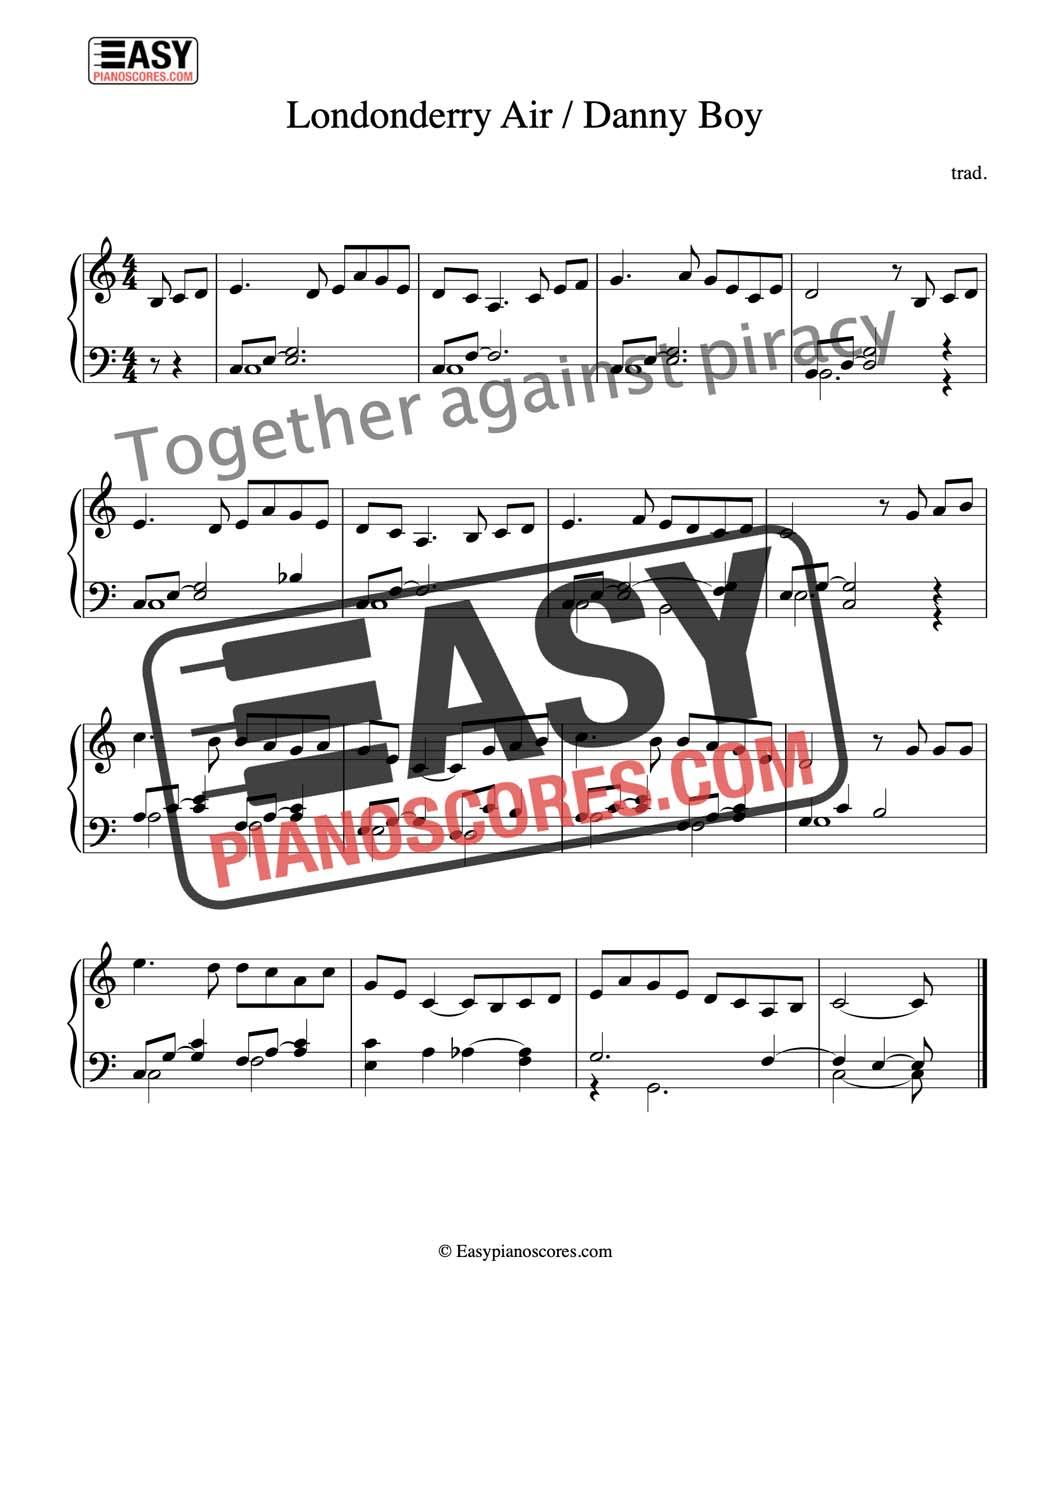 Piano score of Londonderry Air (Danny Boy)